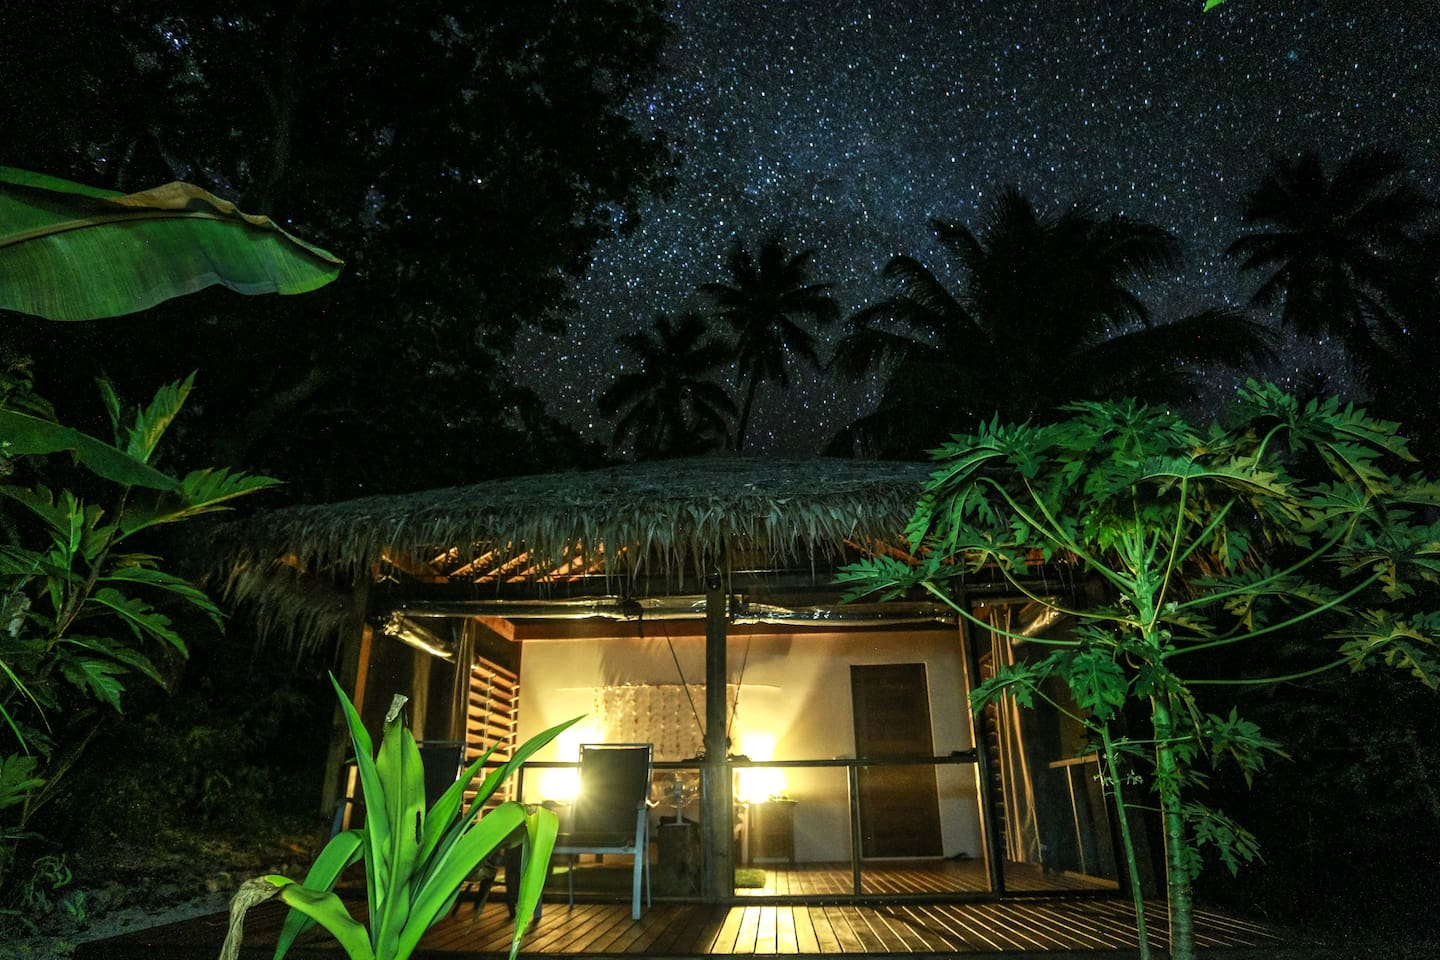 Divi's Jungle Bungalow, ready for you now and gorgeous at night.